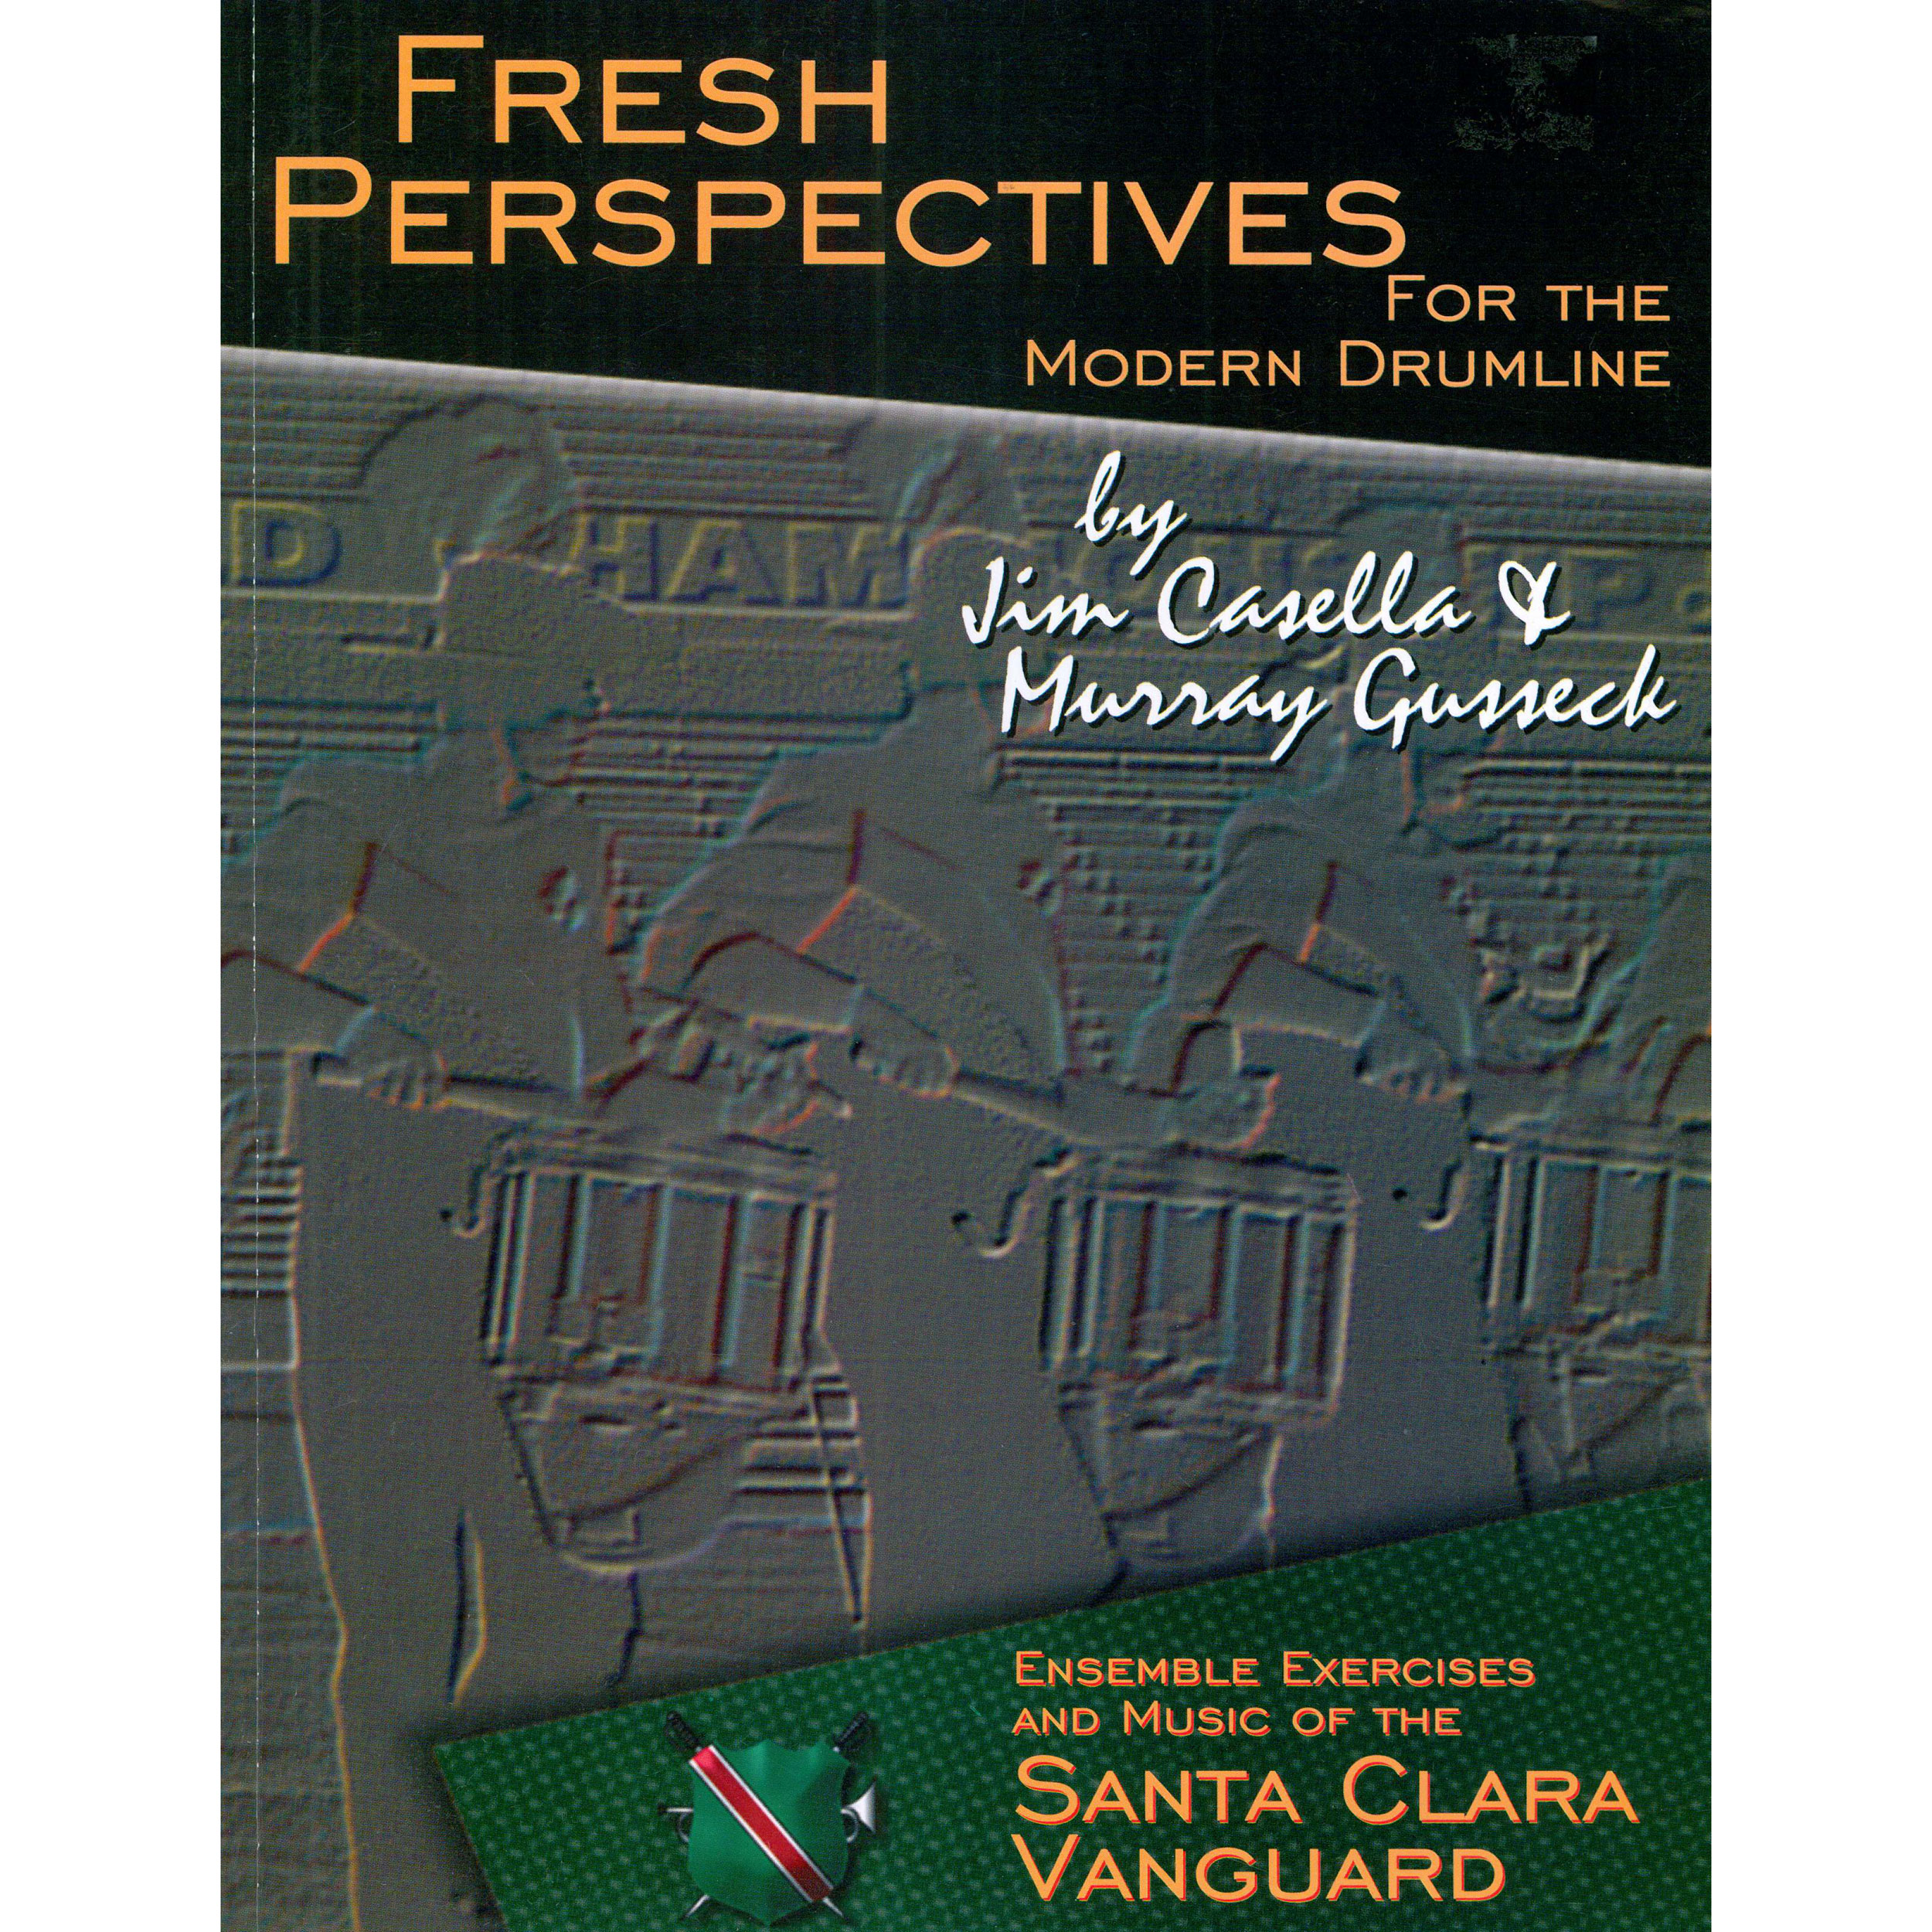 Fresh Perspectives for Modern Drumlines by Jim Casella & Murray Gusseck